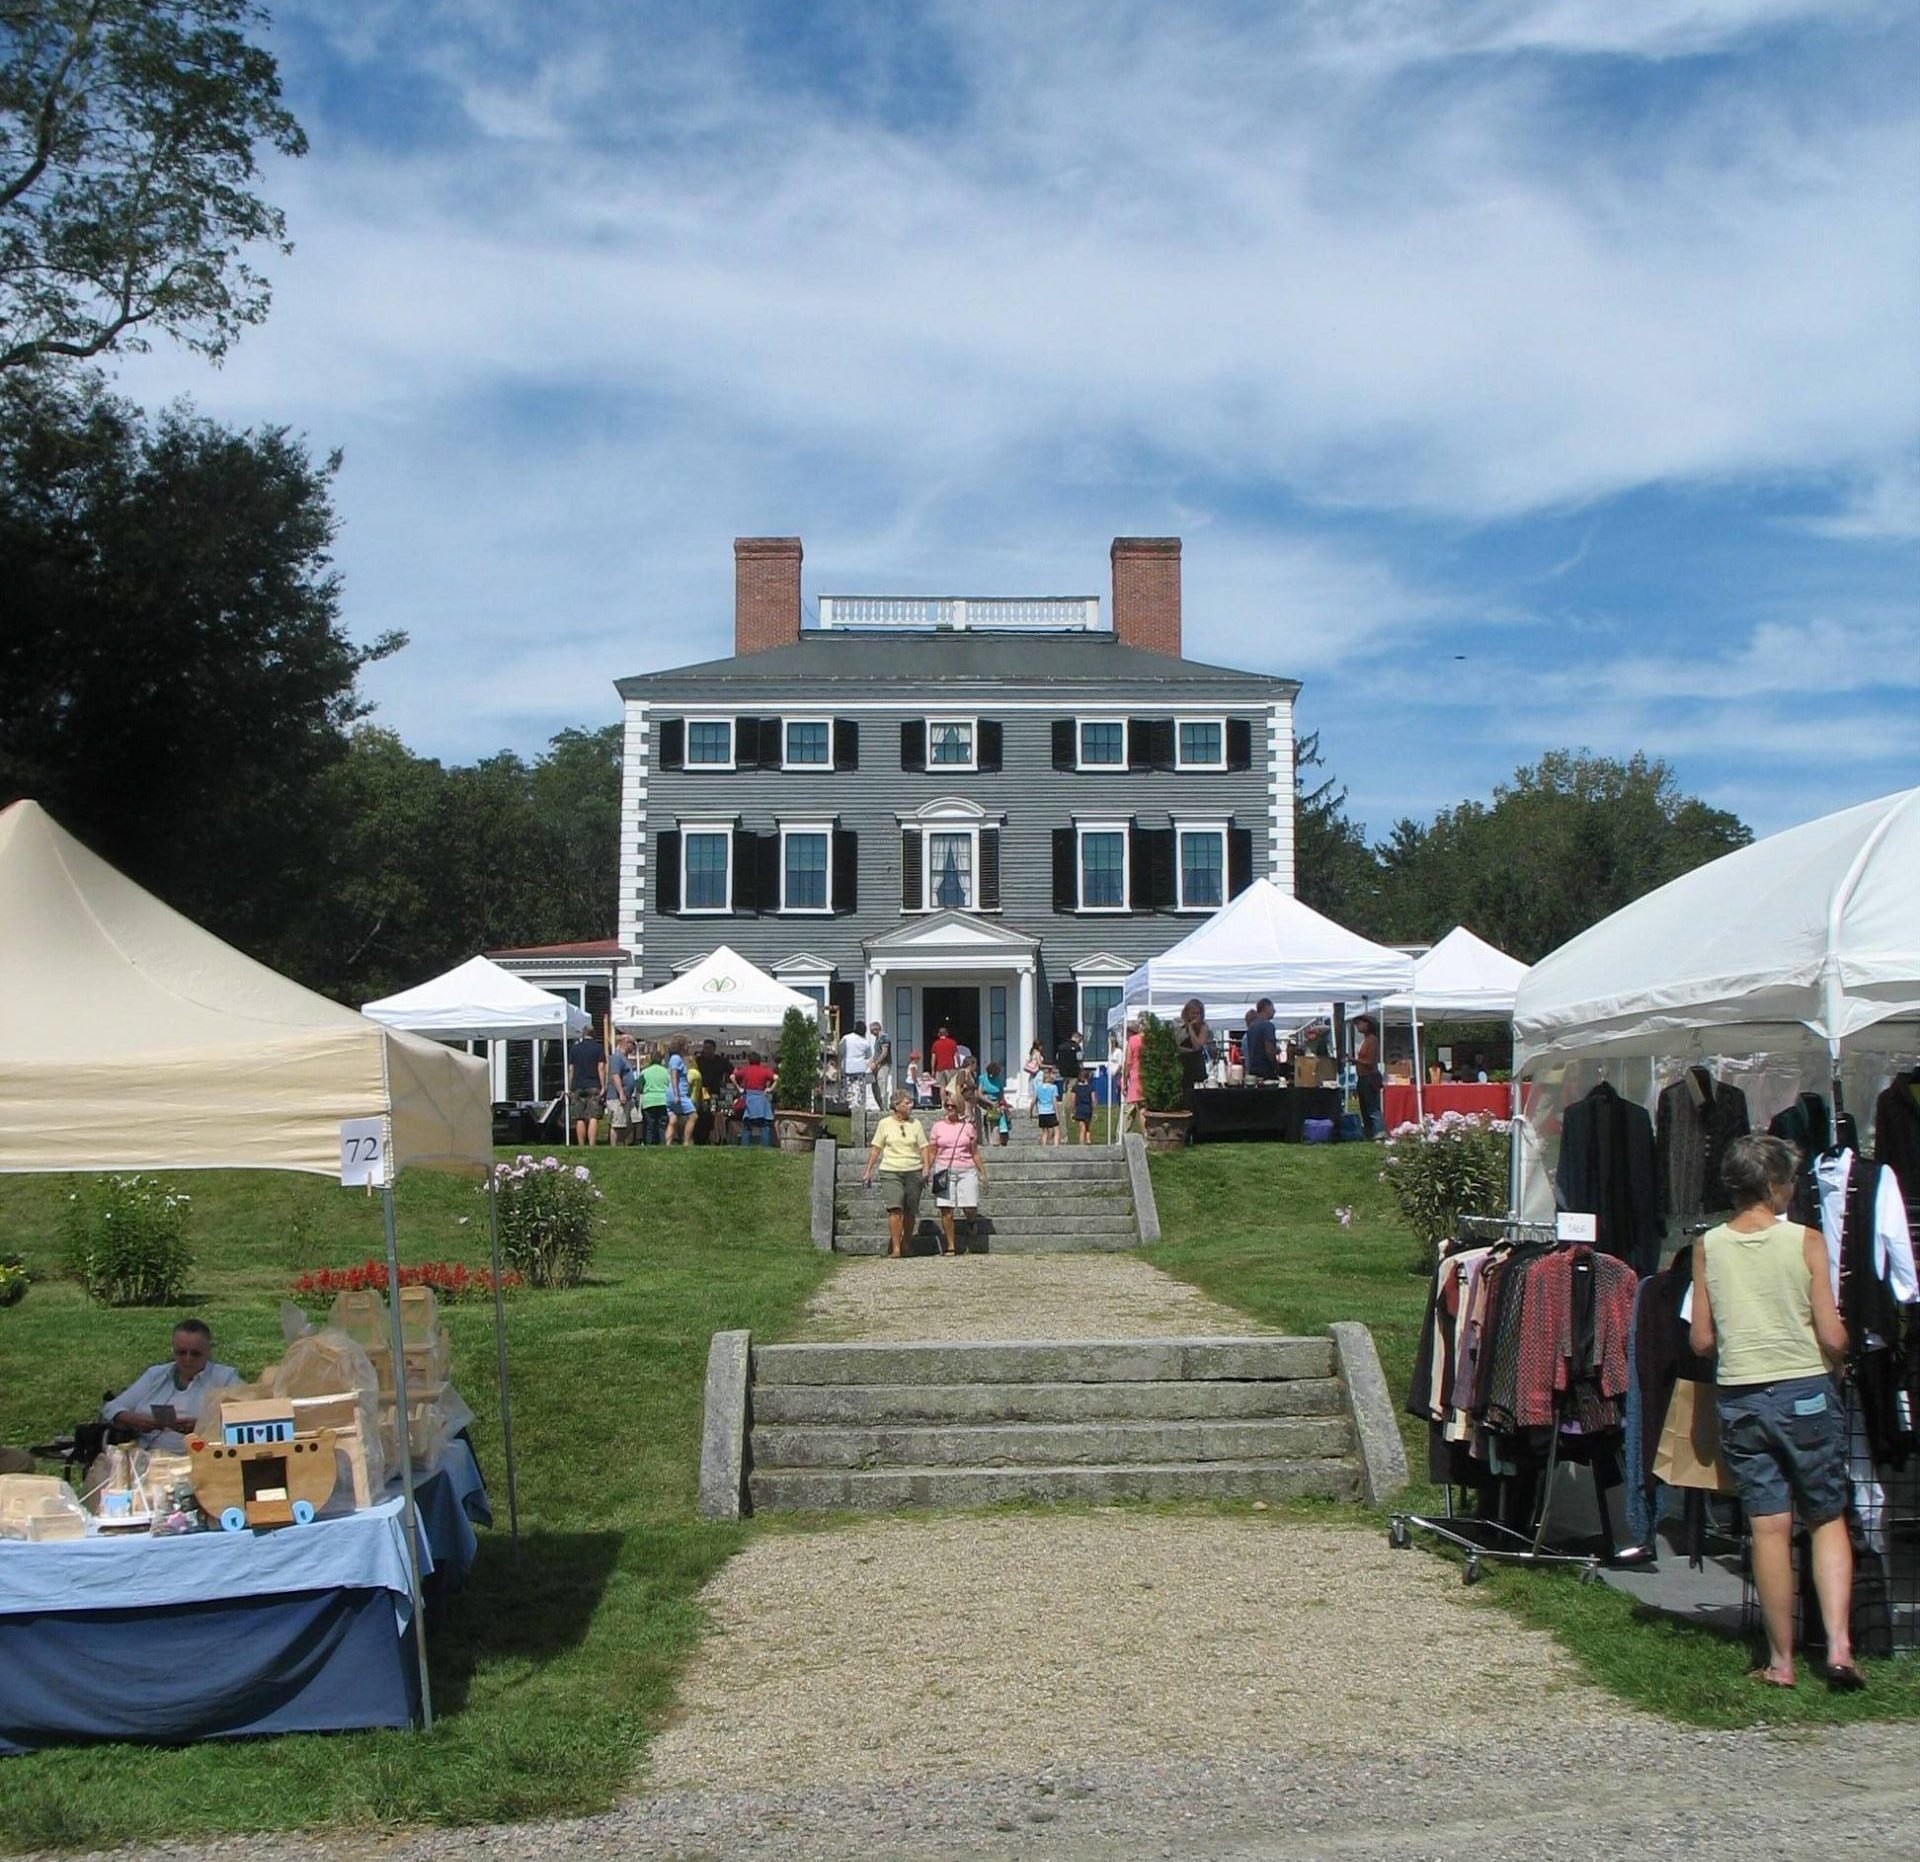 Vendor tents and people shopping on the lawn of the Codman Estate